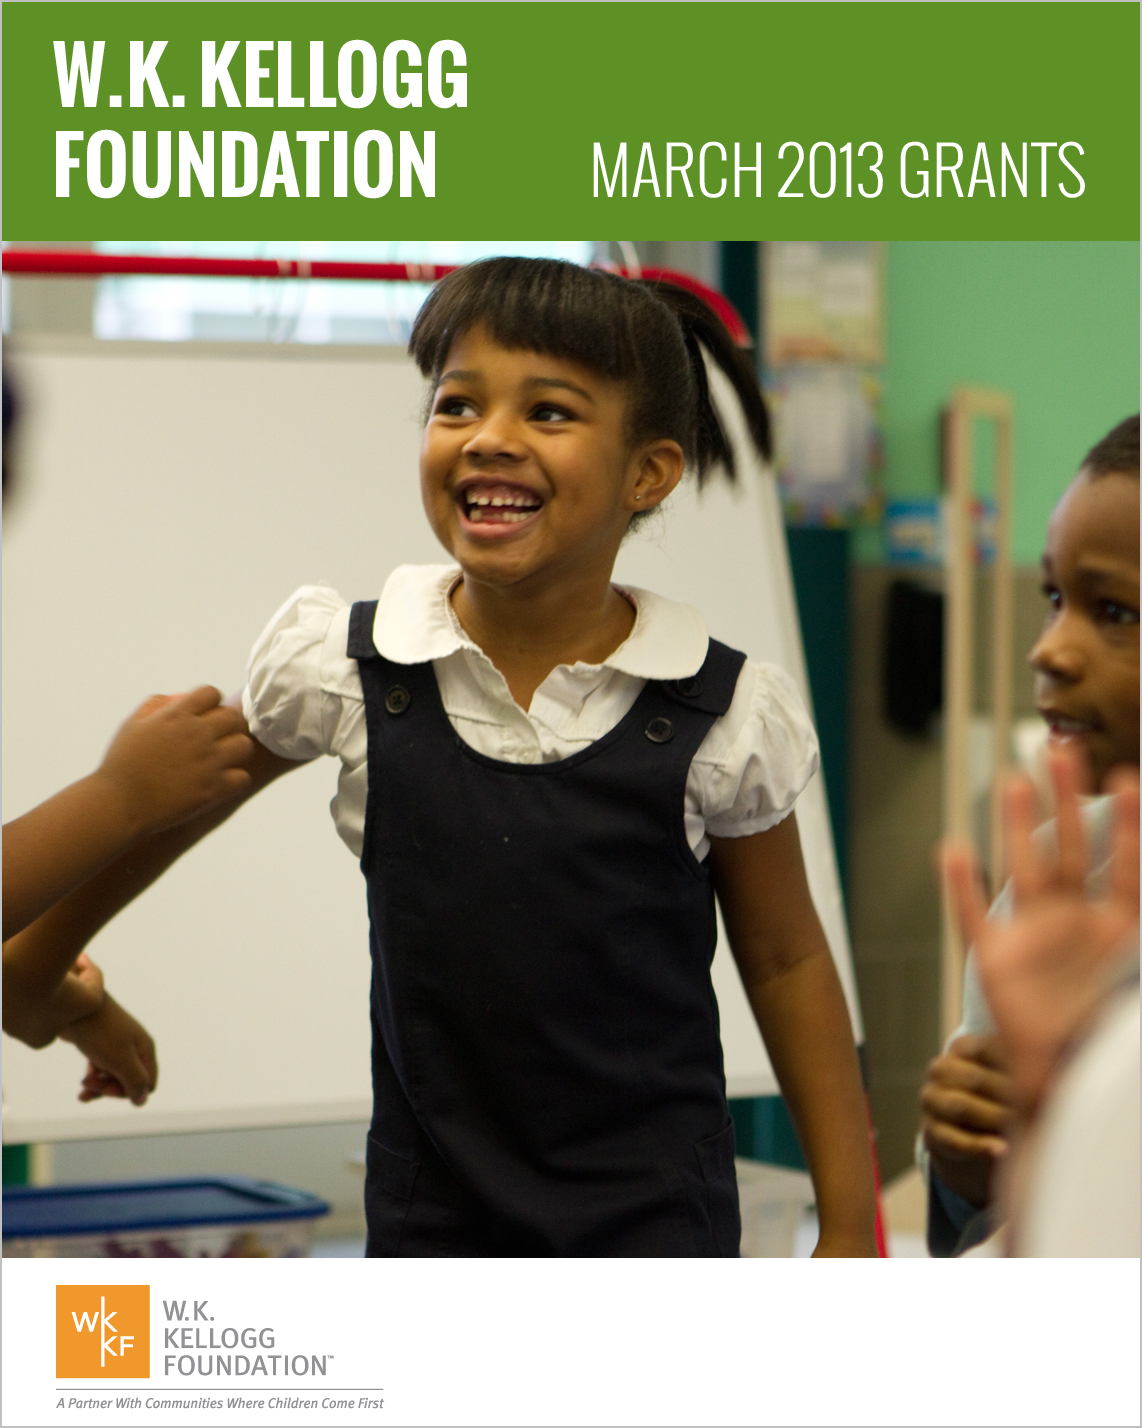 W.K. Kellogg Foundation Grants - March 2013